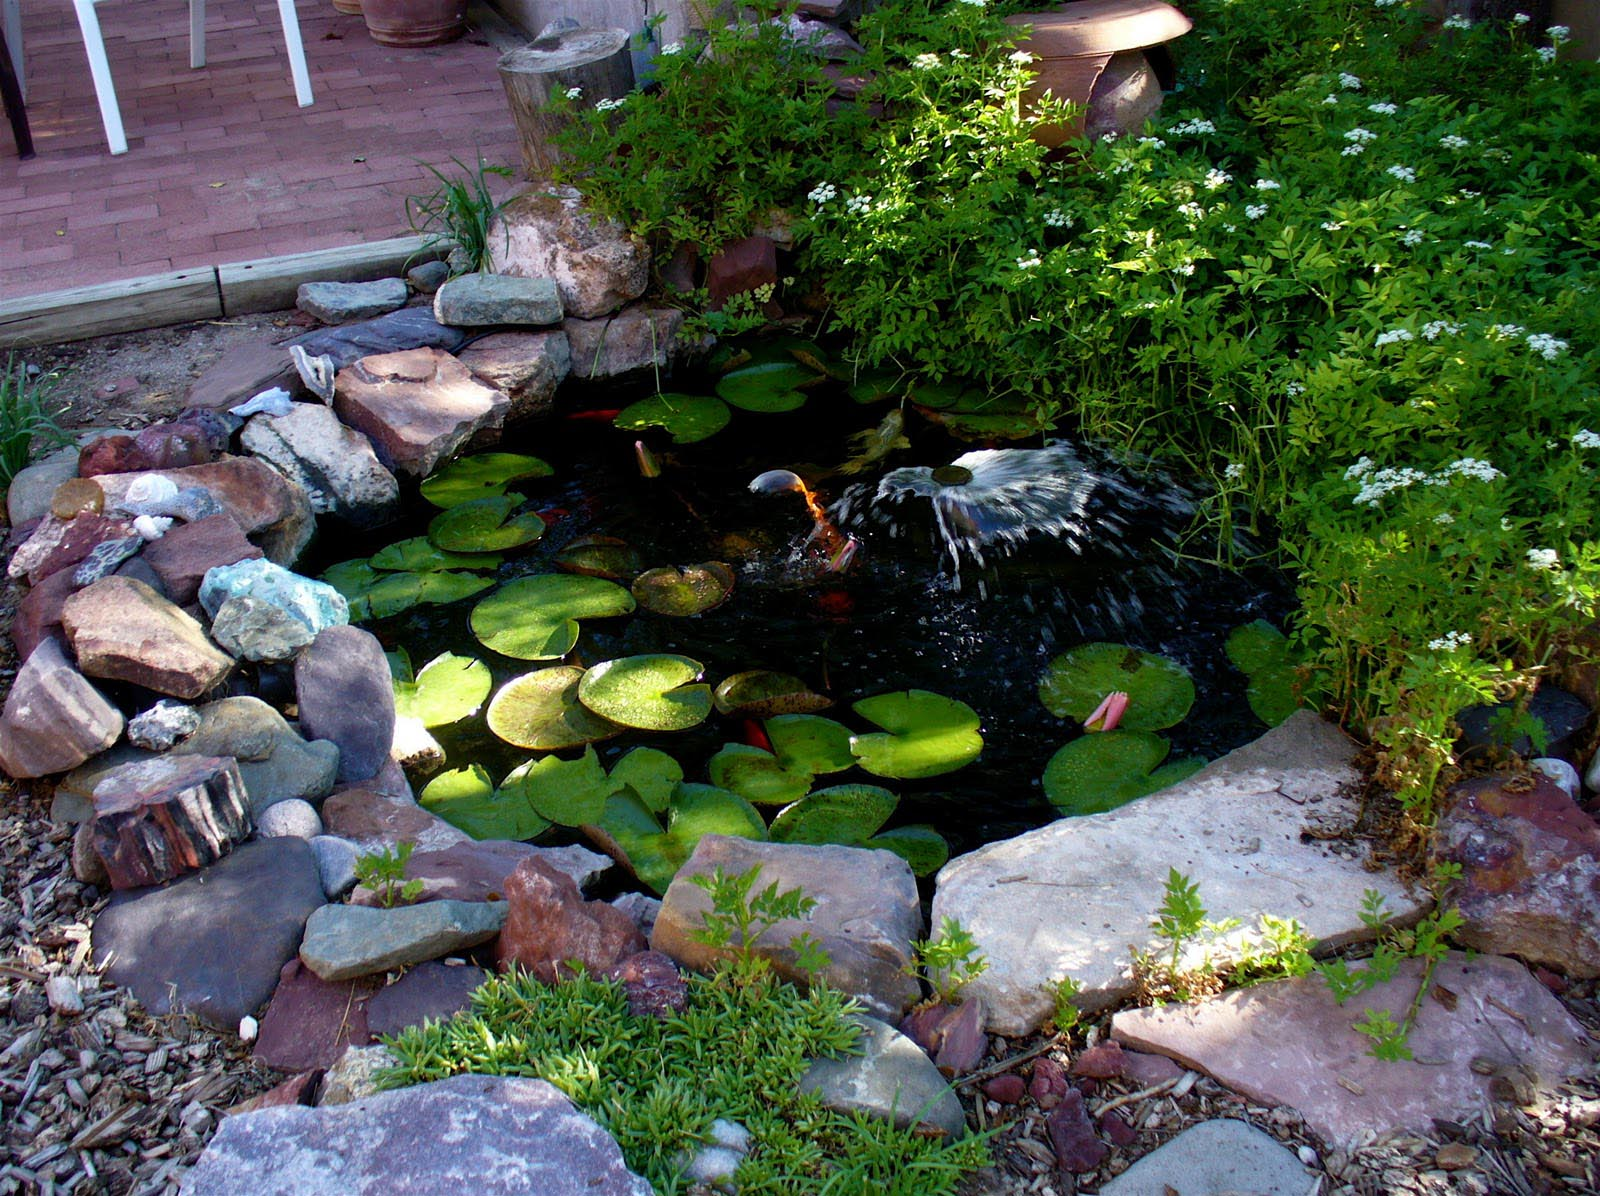 Garden fish pond ideas backyard design ideas for Outdoor fish ponds designs